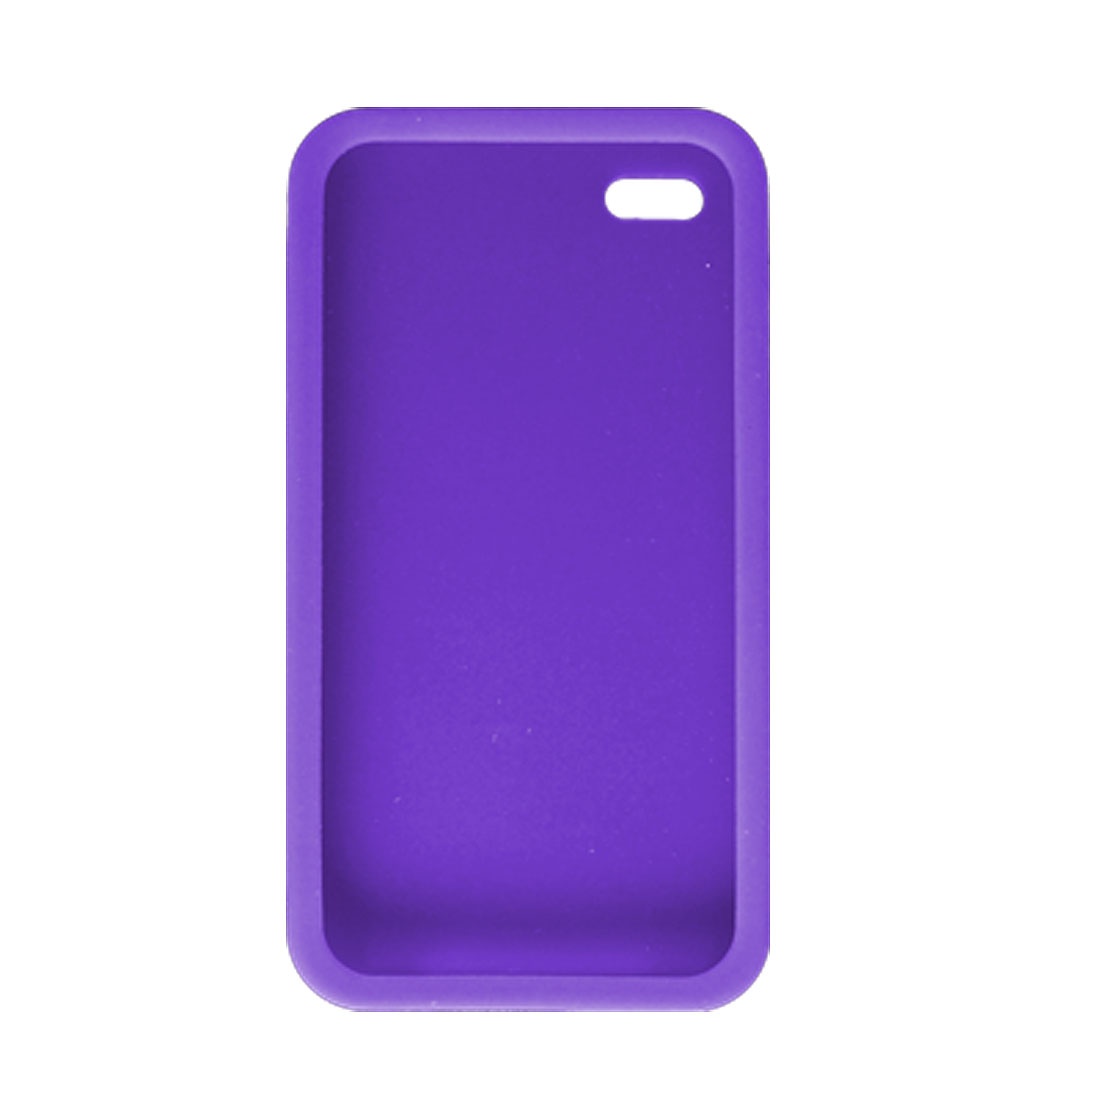 Purple Soft Silicone Skin Protector Case Cover for iPhone 4 4G